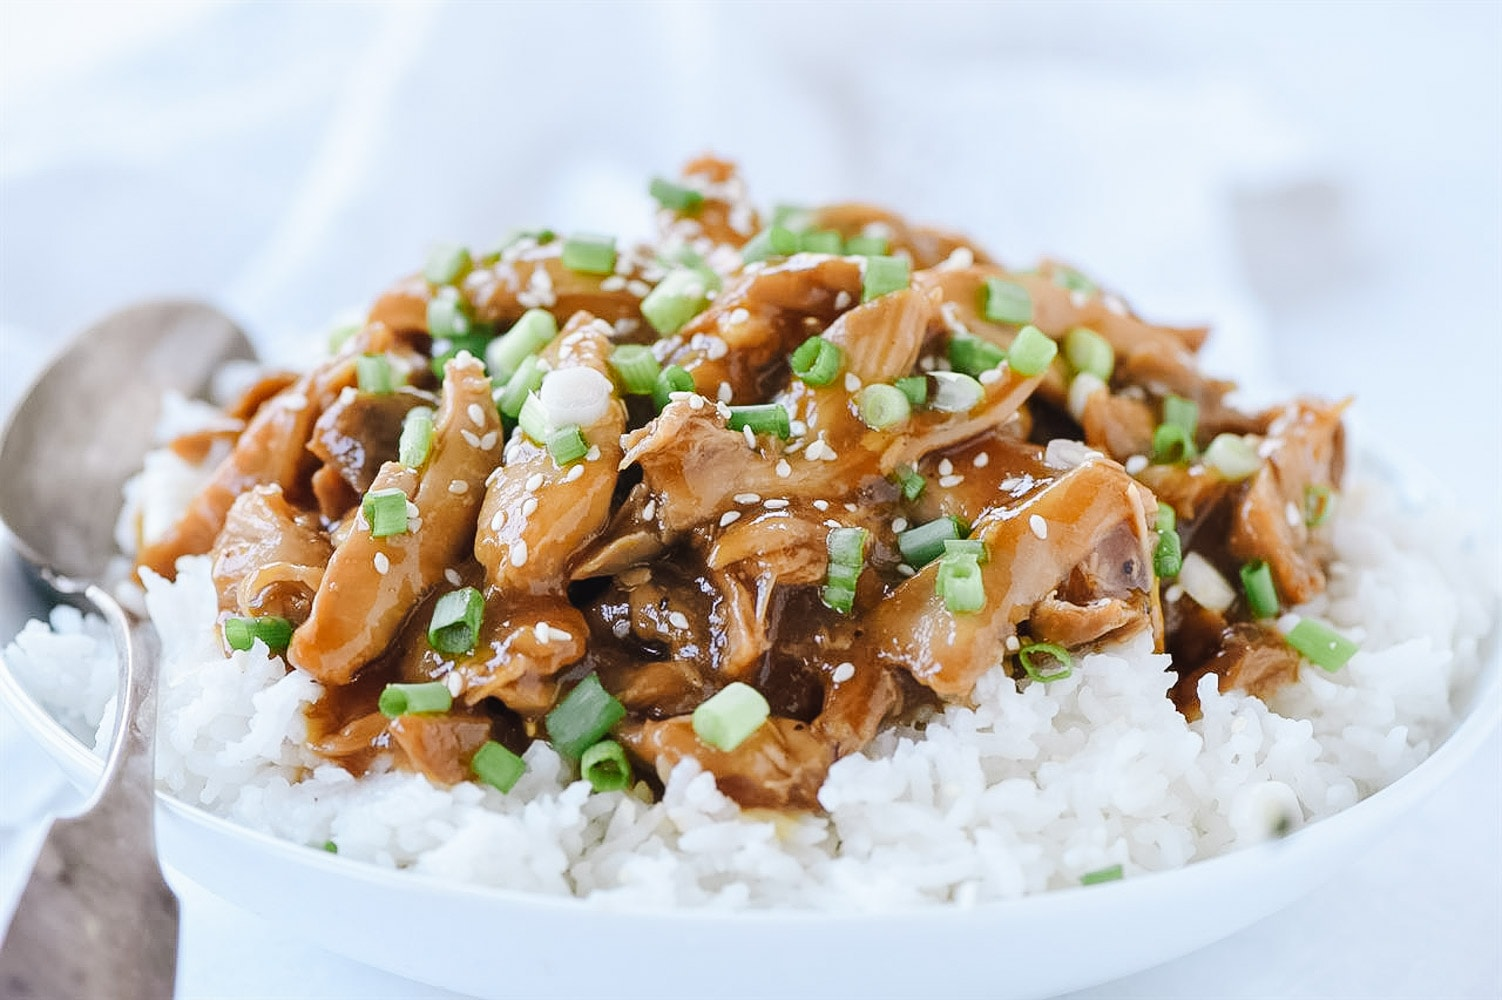 teriyaki chicken over rice in a bowl